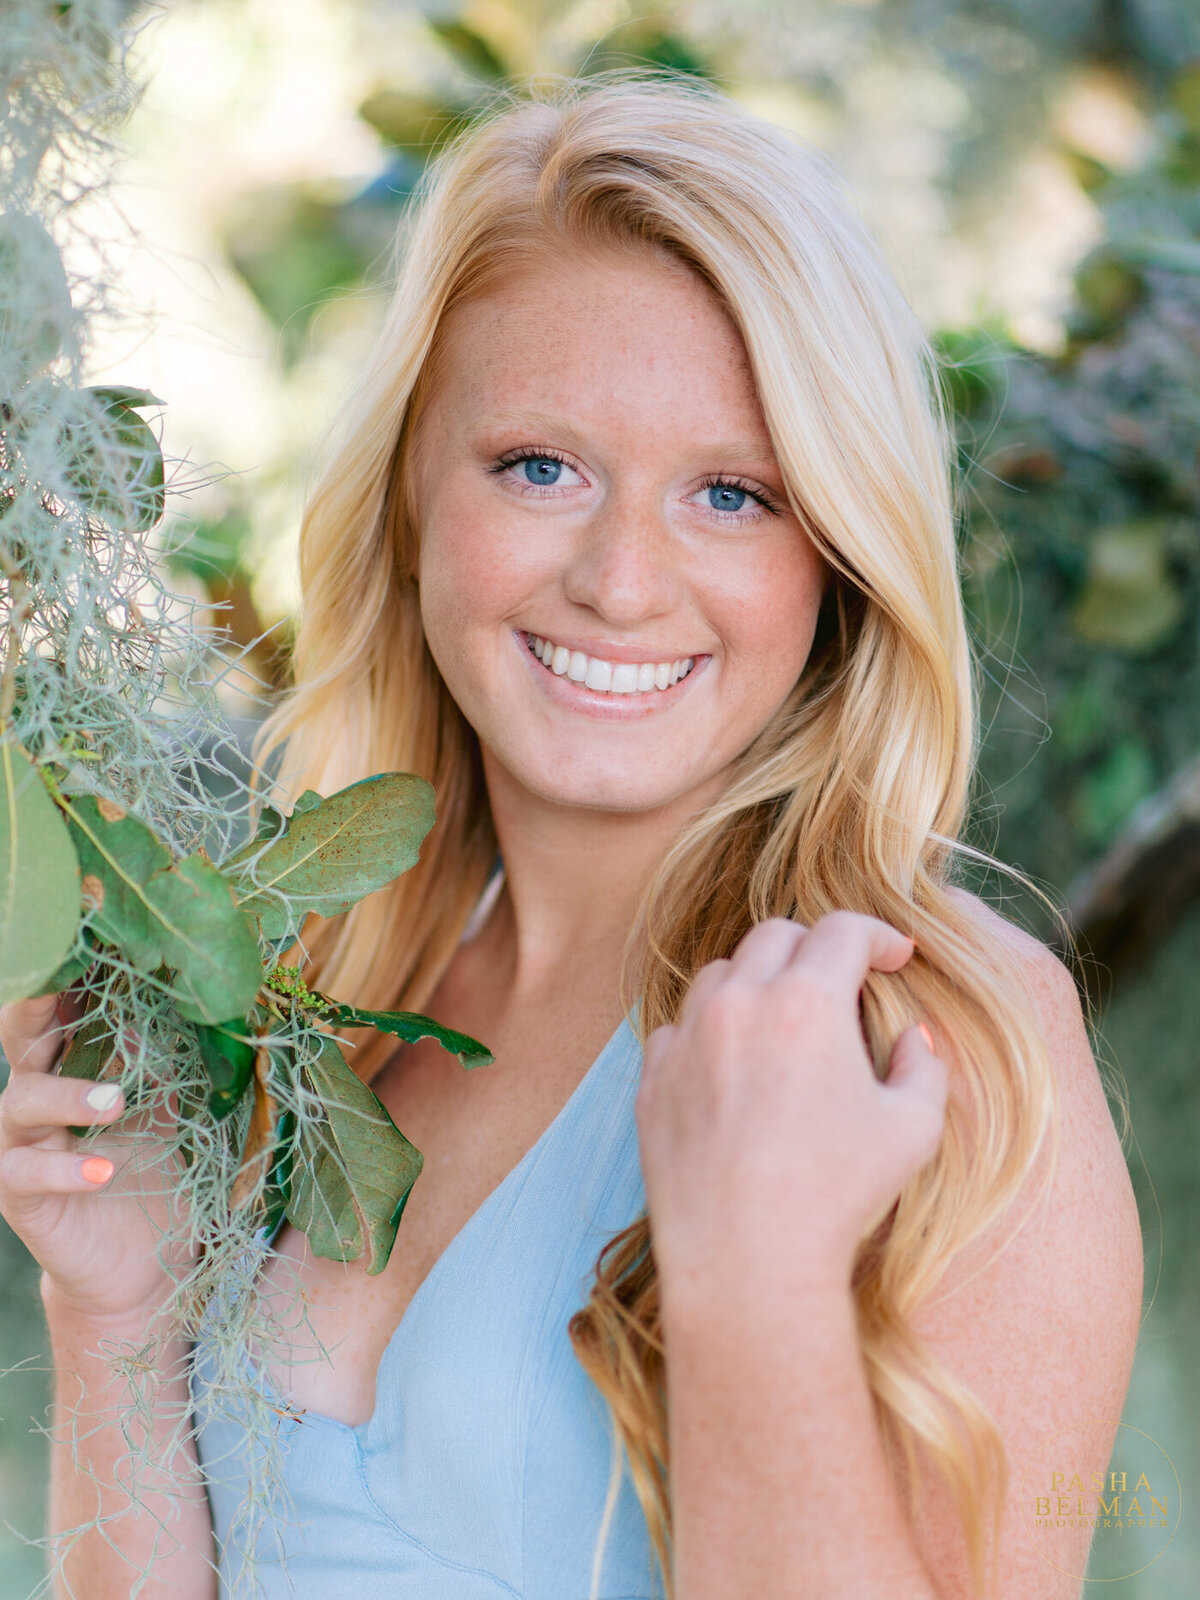 Myrtle Beach High School Senior Photos by Pasha Myrtle Beach Senior Photographer-23